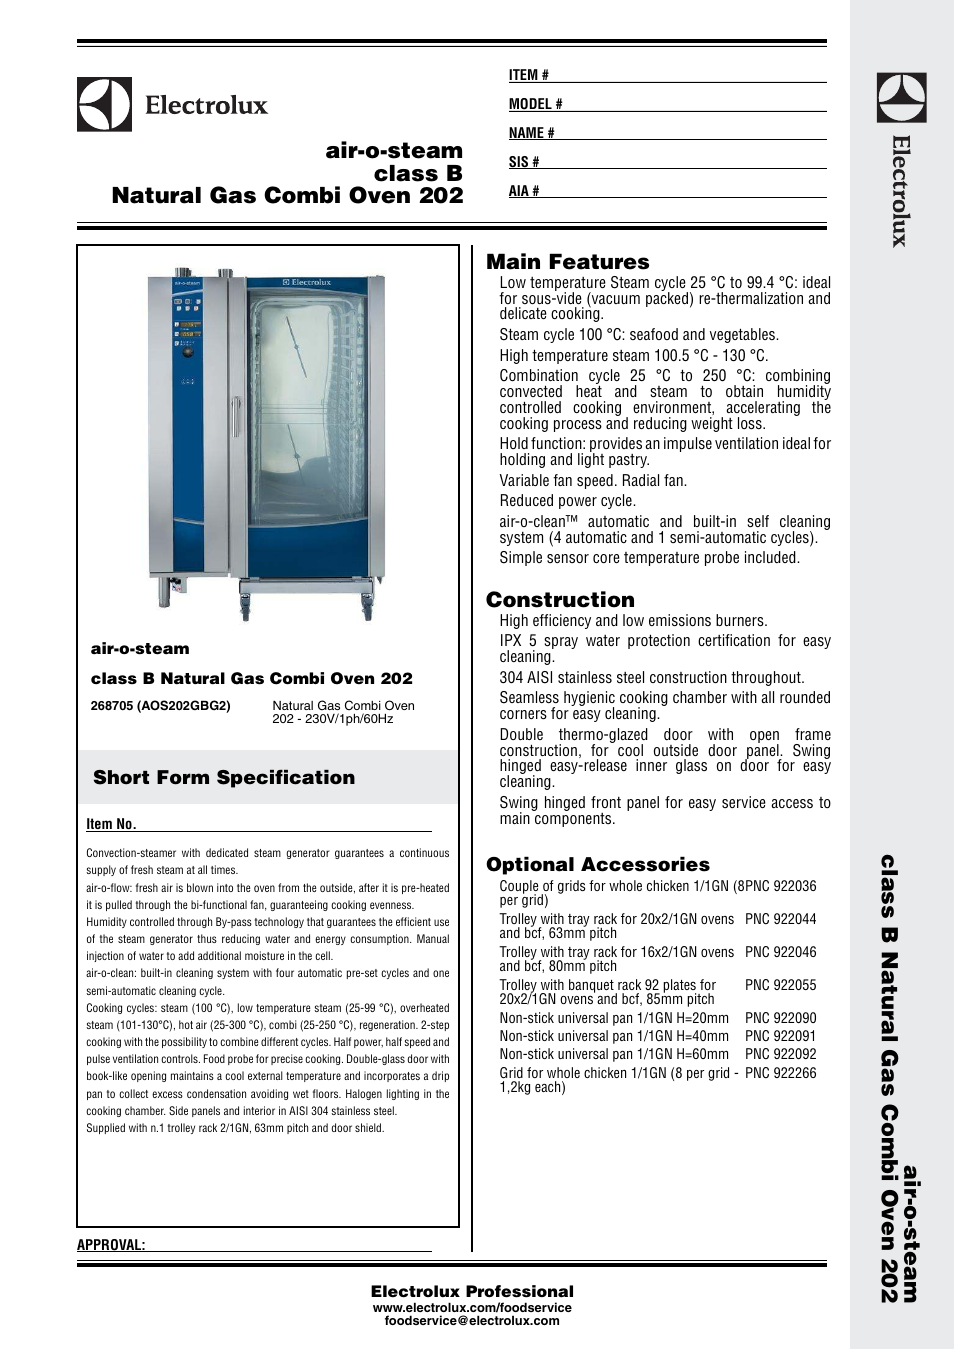 electrolux air o steam natural gas combi oven 202 user manual 3 pages rh manualsdir com electrolux steam oven manual electrolux air o steam combi oven service manual